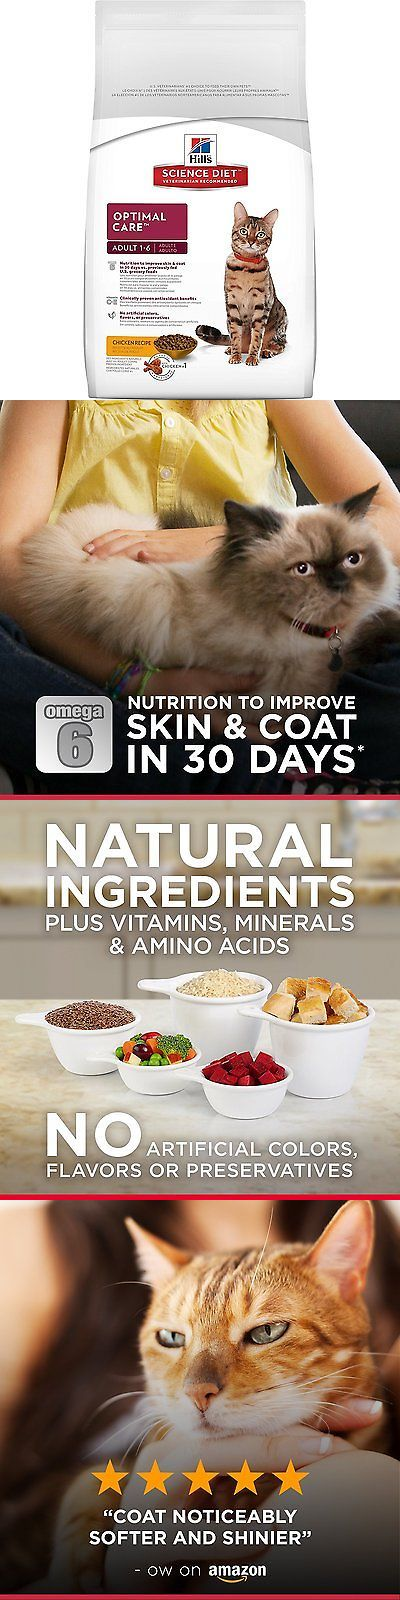 Animals Cats: Hills Science Diet Adult Optimal Care Chicken Recipe Dry Cat Food, 16 Lb Bag -> BUY IT NOW ONLY: $41.33 on eBay!